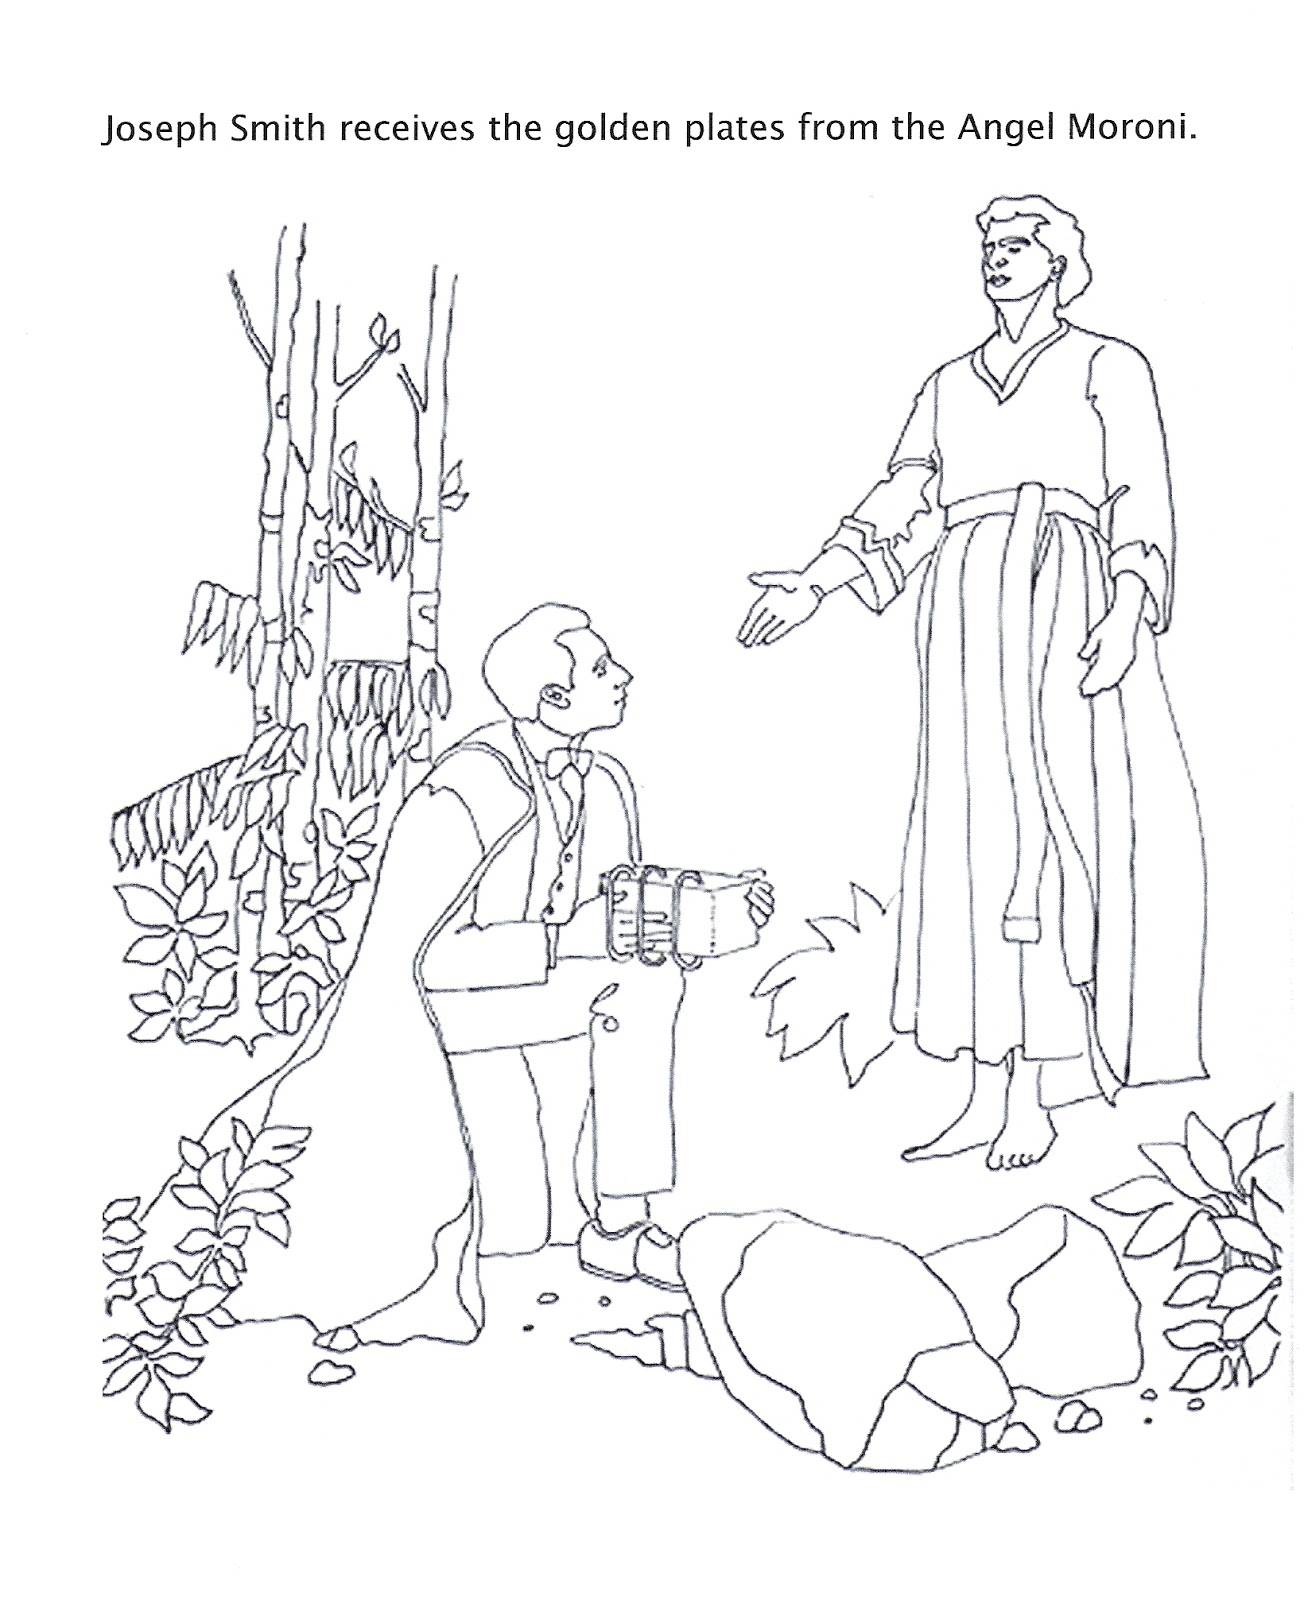 book of mormon coloring pages - photo#12